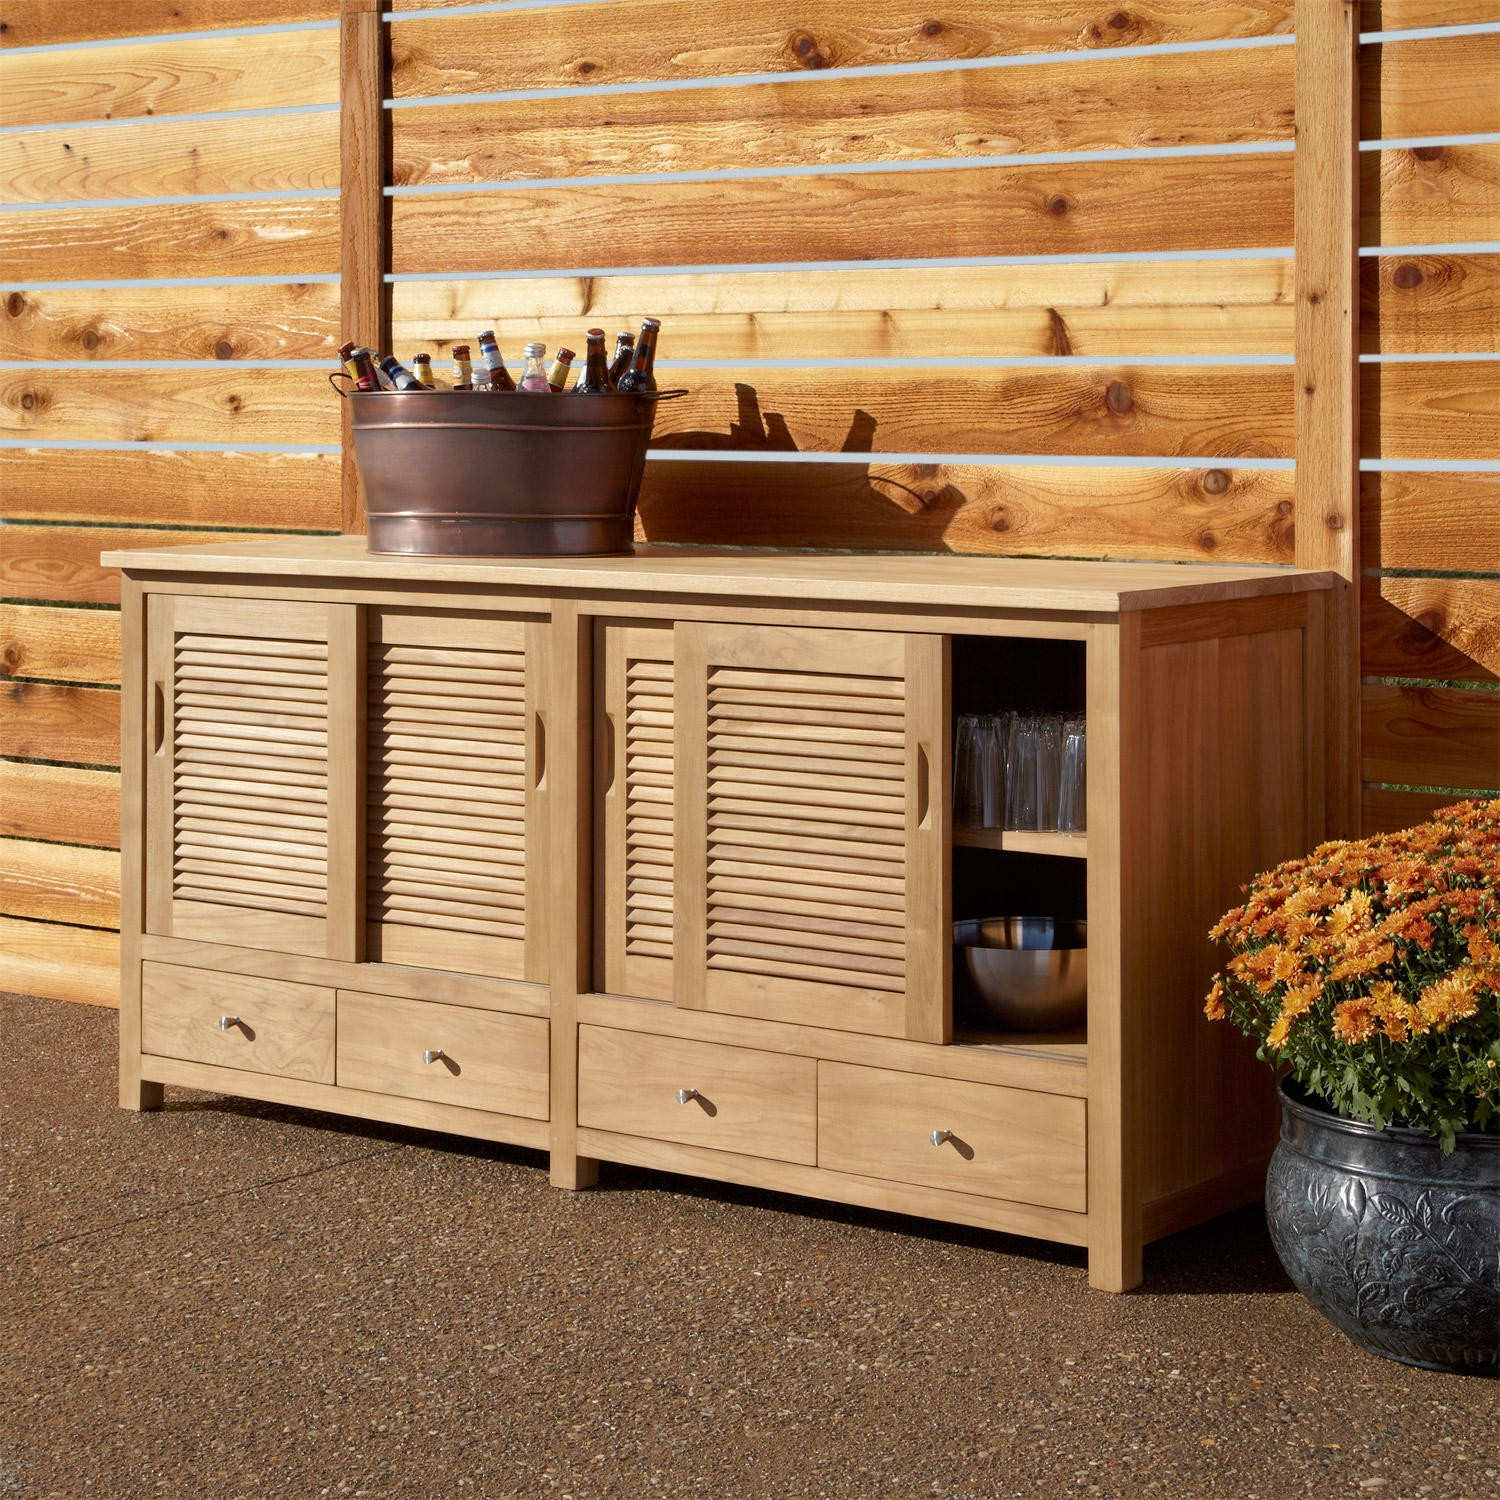 Old Fashioned Outdoor Kitchen Cabinets with Small Drawers and Cabinets beside Wooden Wall Fence